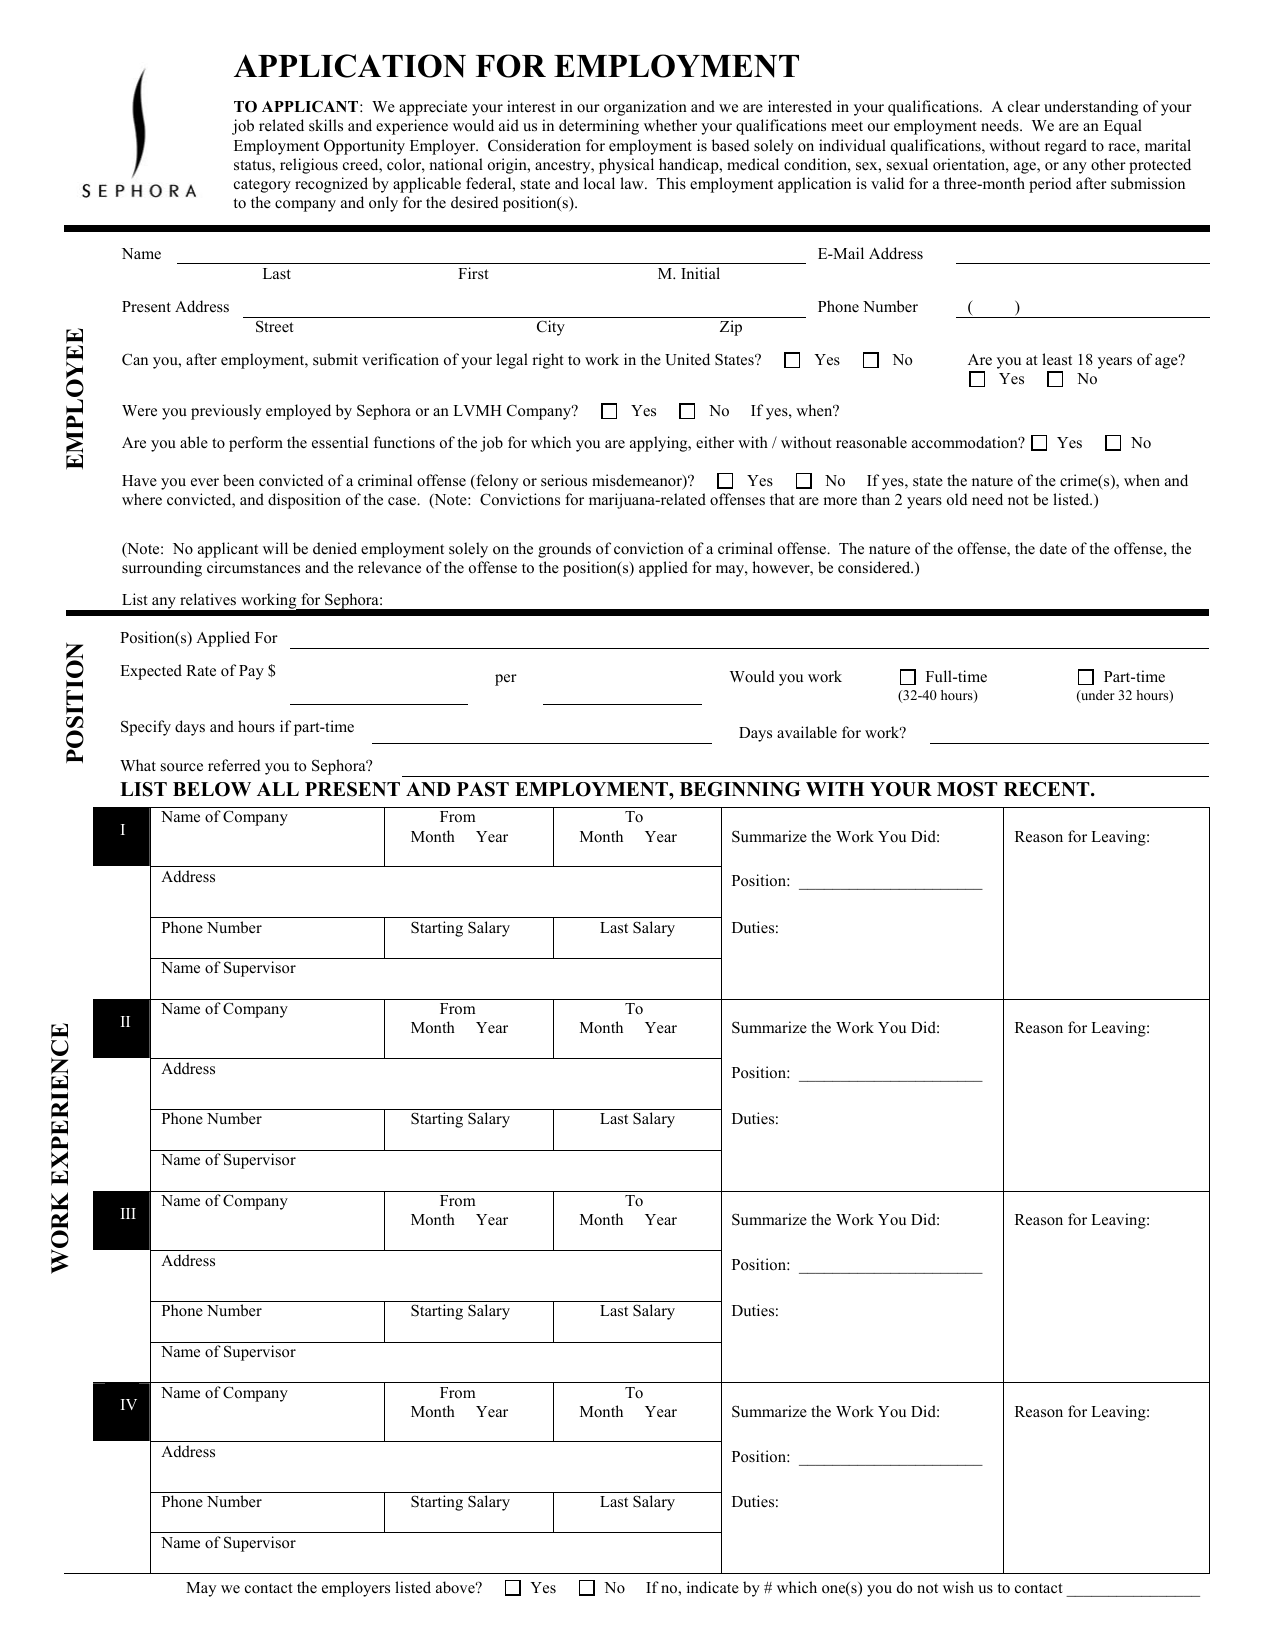 Download Sephora Job Application Form – Careers | PDF ... on marriott job application, pac sun job application, officemax job application, cold stone creamery job application, bass pro shops job application, rooms to go job application, winco foods job application, love culture job application, revlon job application, tjmaxx job application, forever21 job application, ulta job application, bath & body works job application, chanel job application, urban outfitters job application, neiman marcus job application, levi's job application, whole foods job application, amazon job application, fye job application,